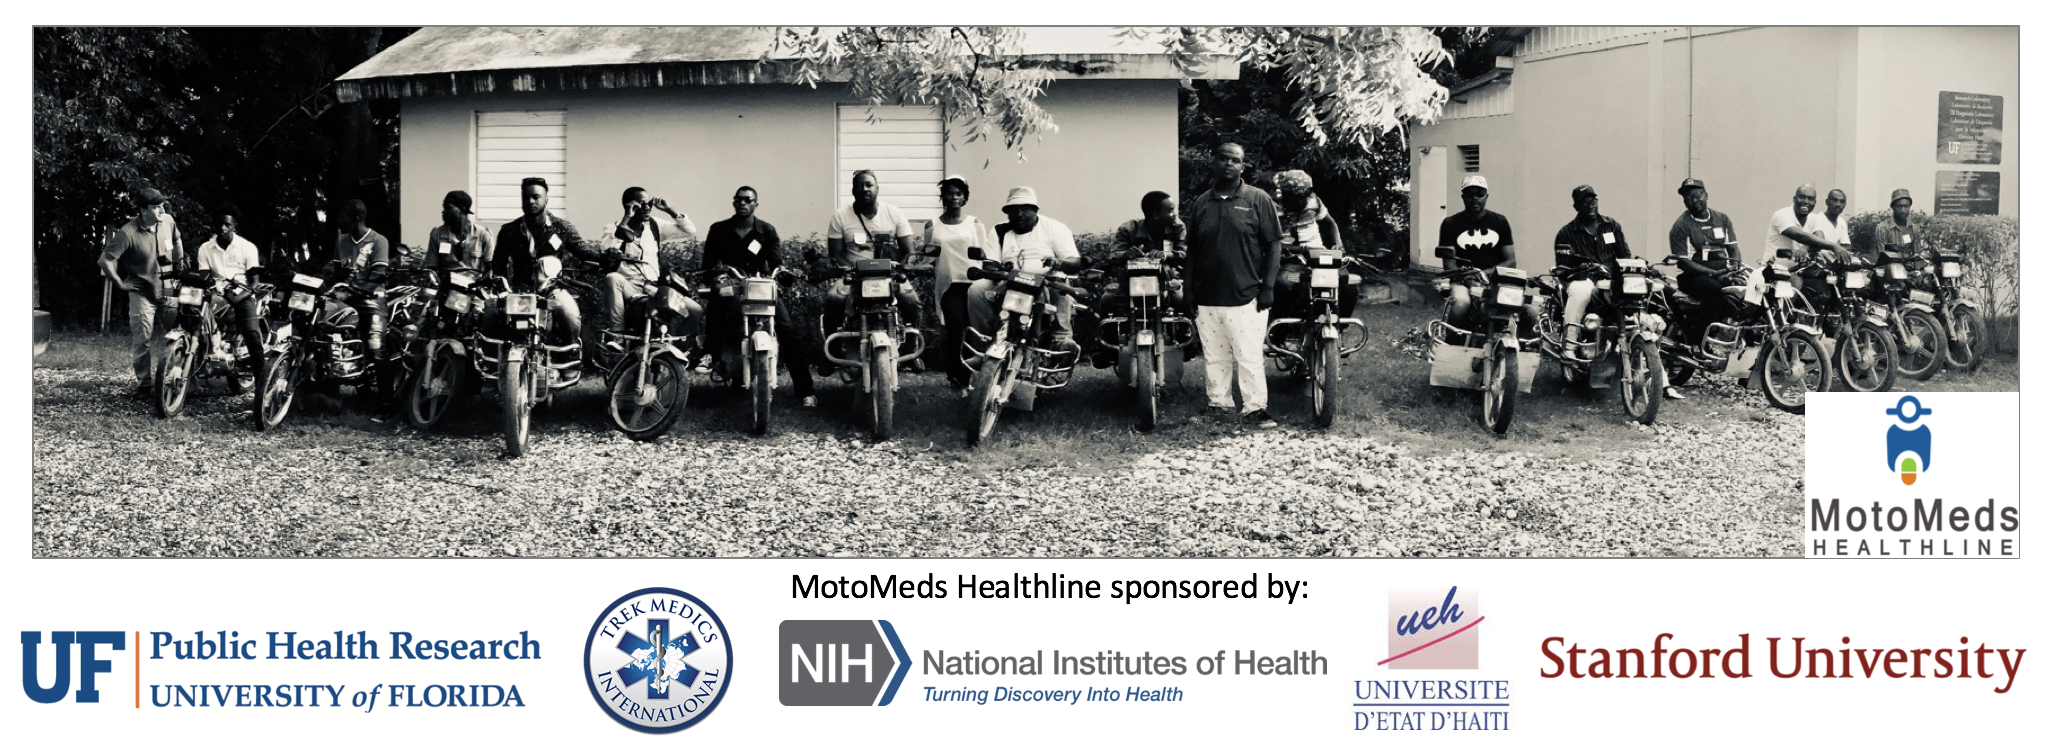 MotoMeds HealthLine Haiti - University of Florida